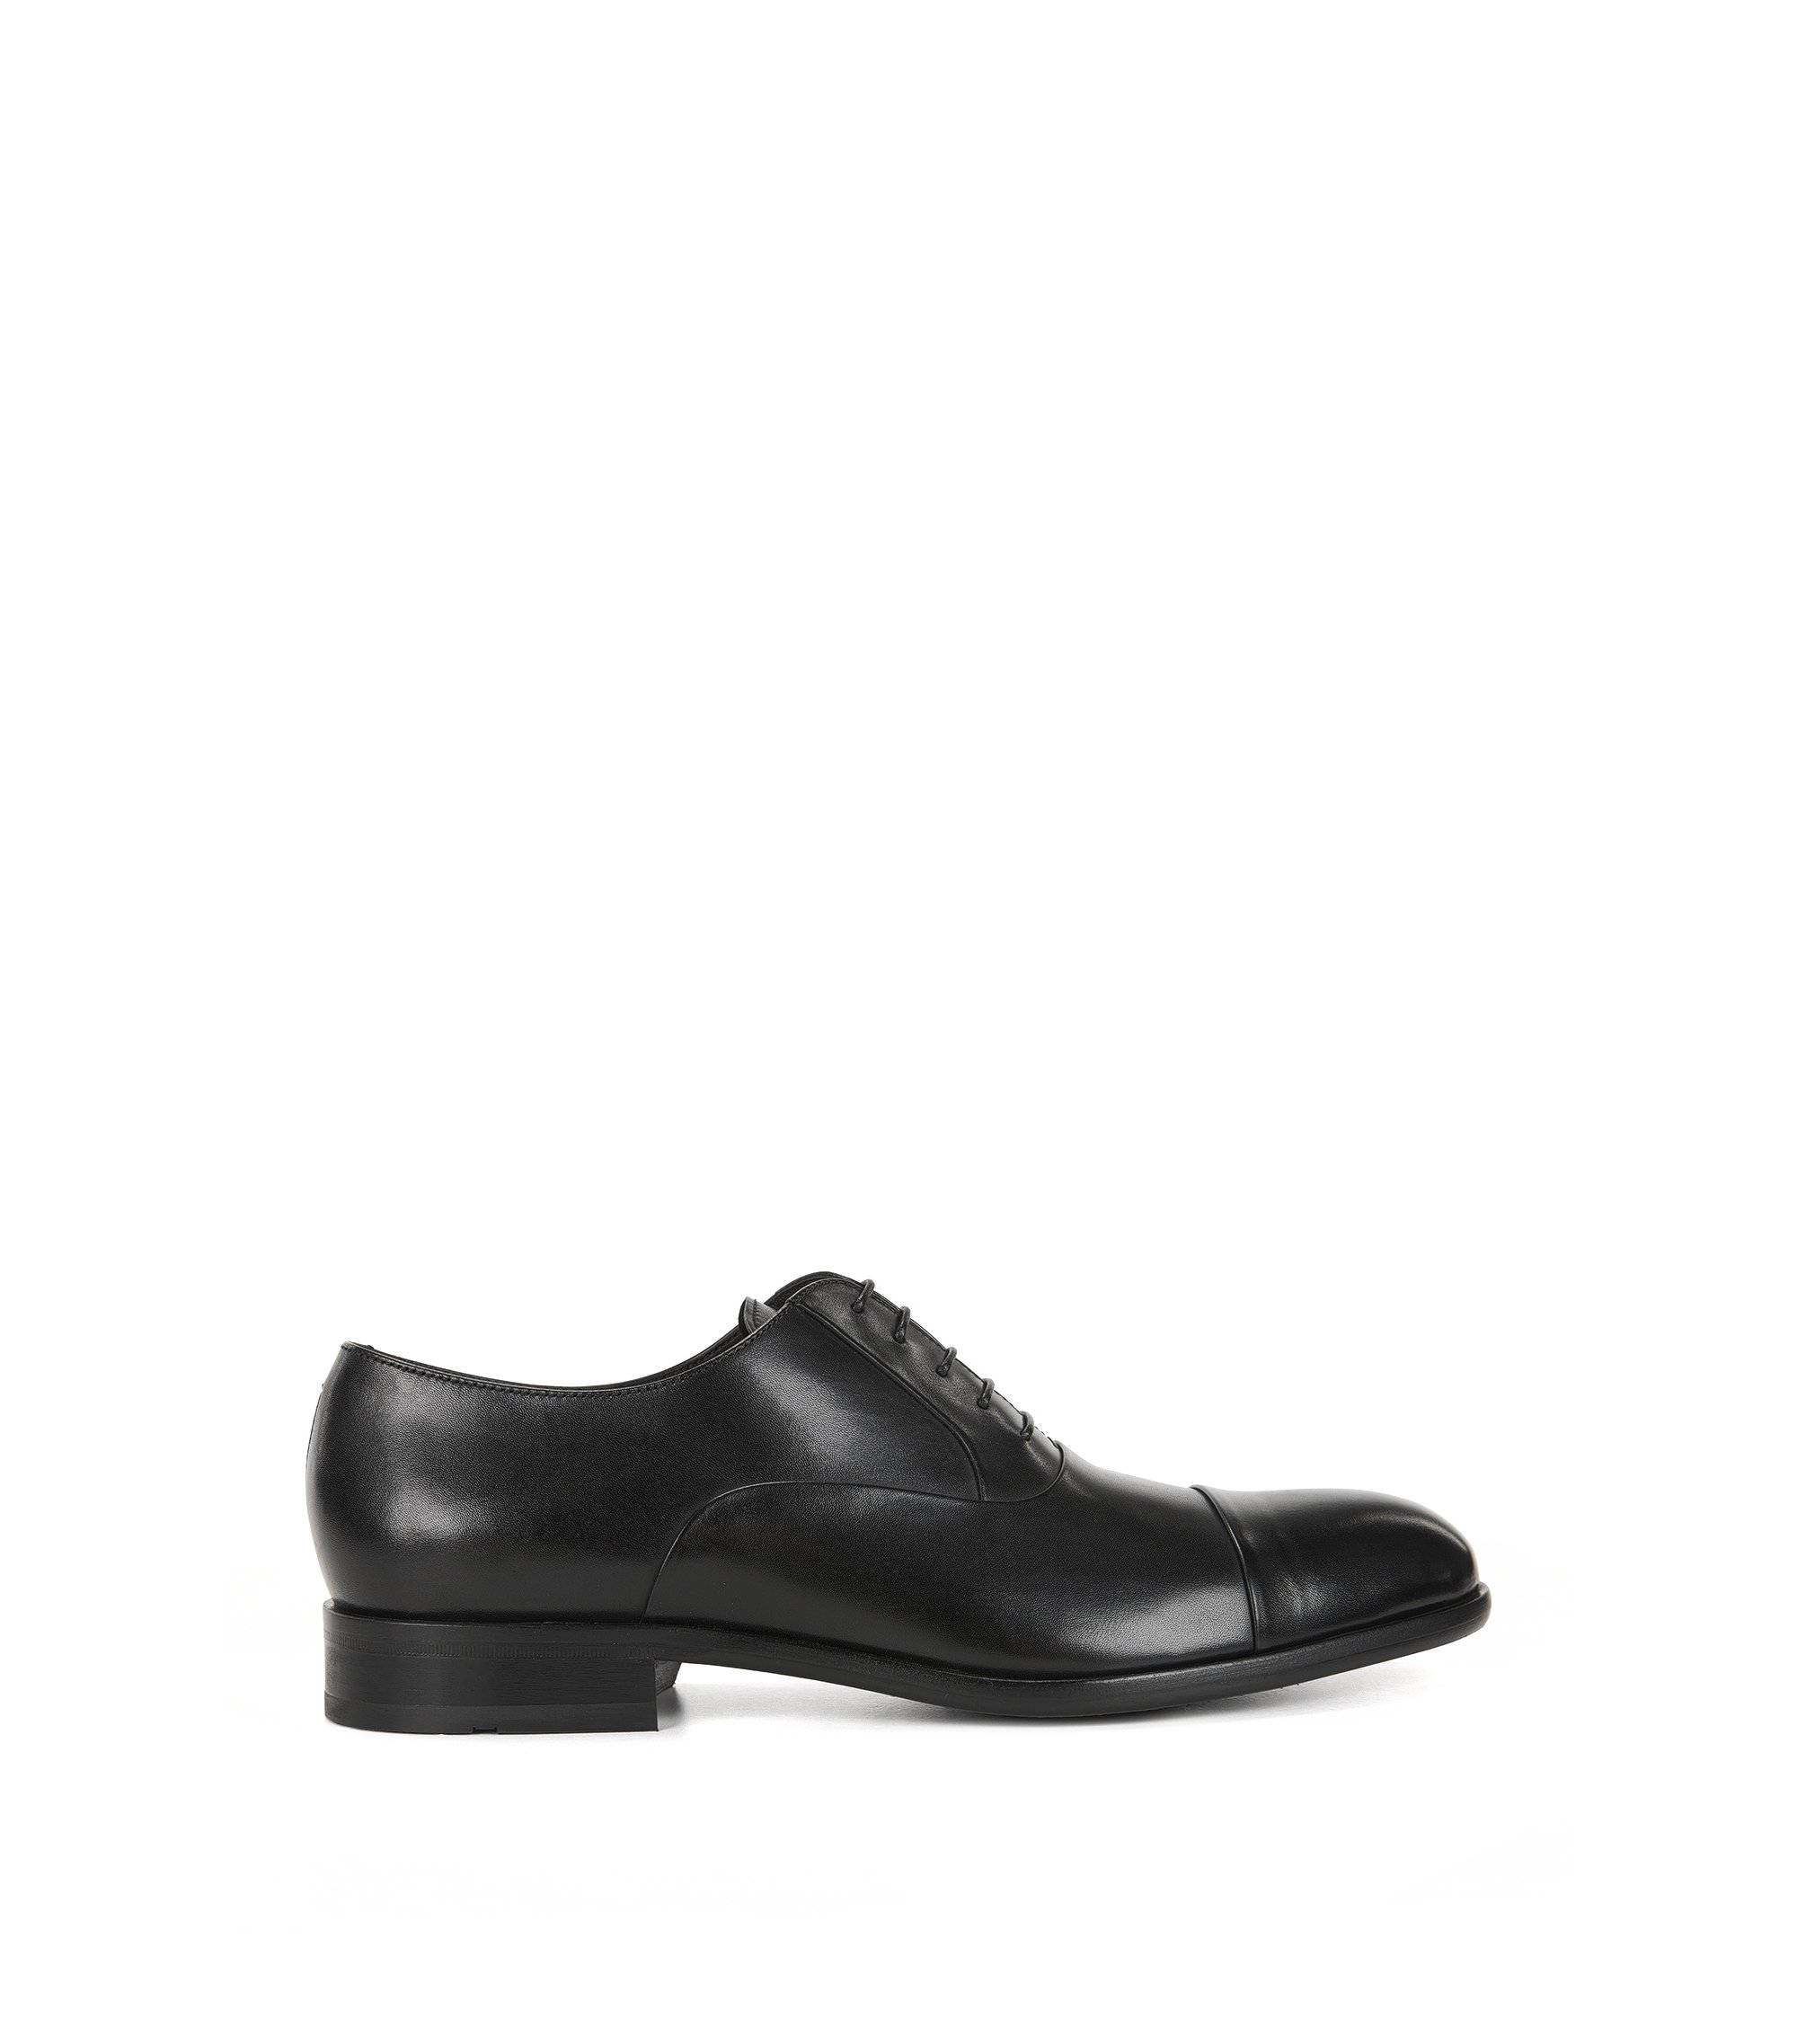 Lace-up Oxford shoes in polished leather, Schwarz